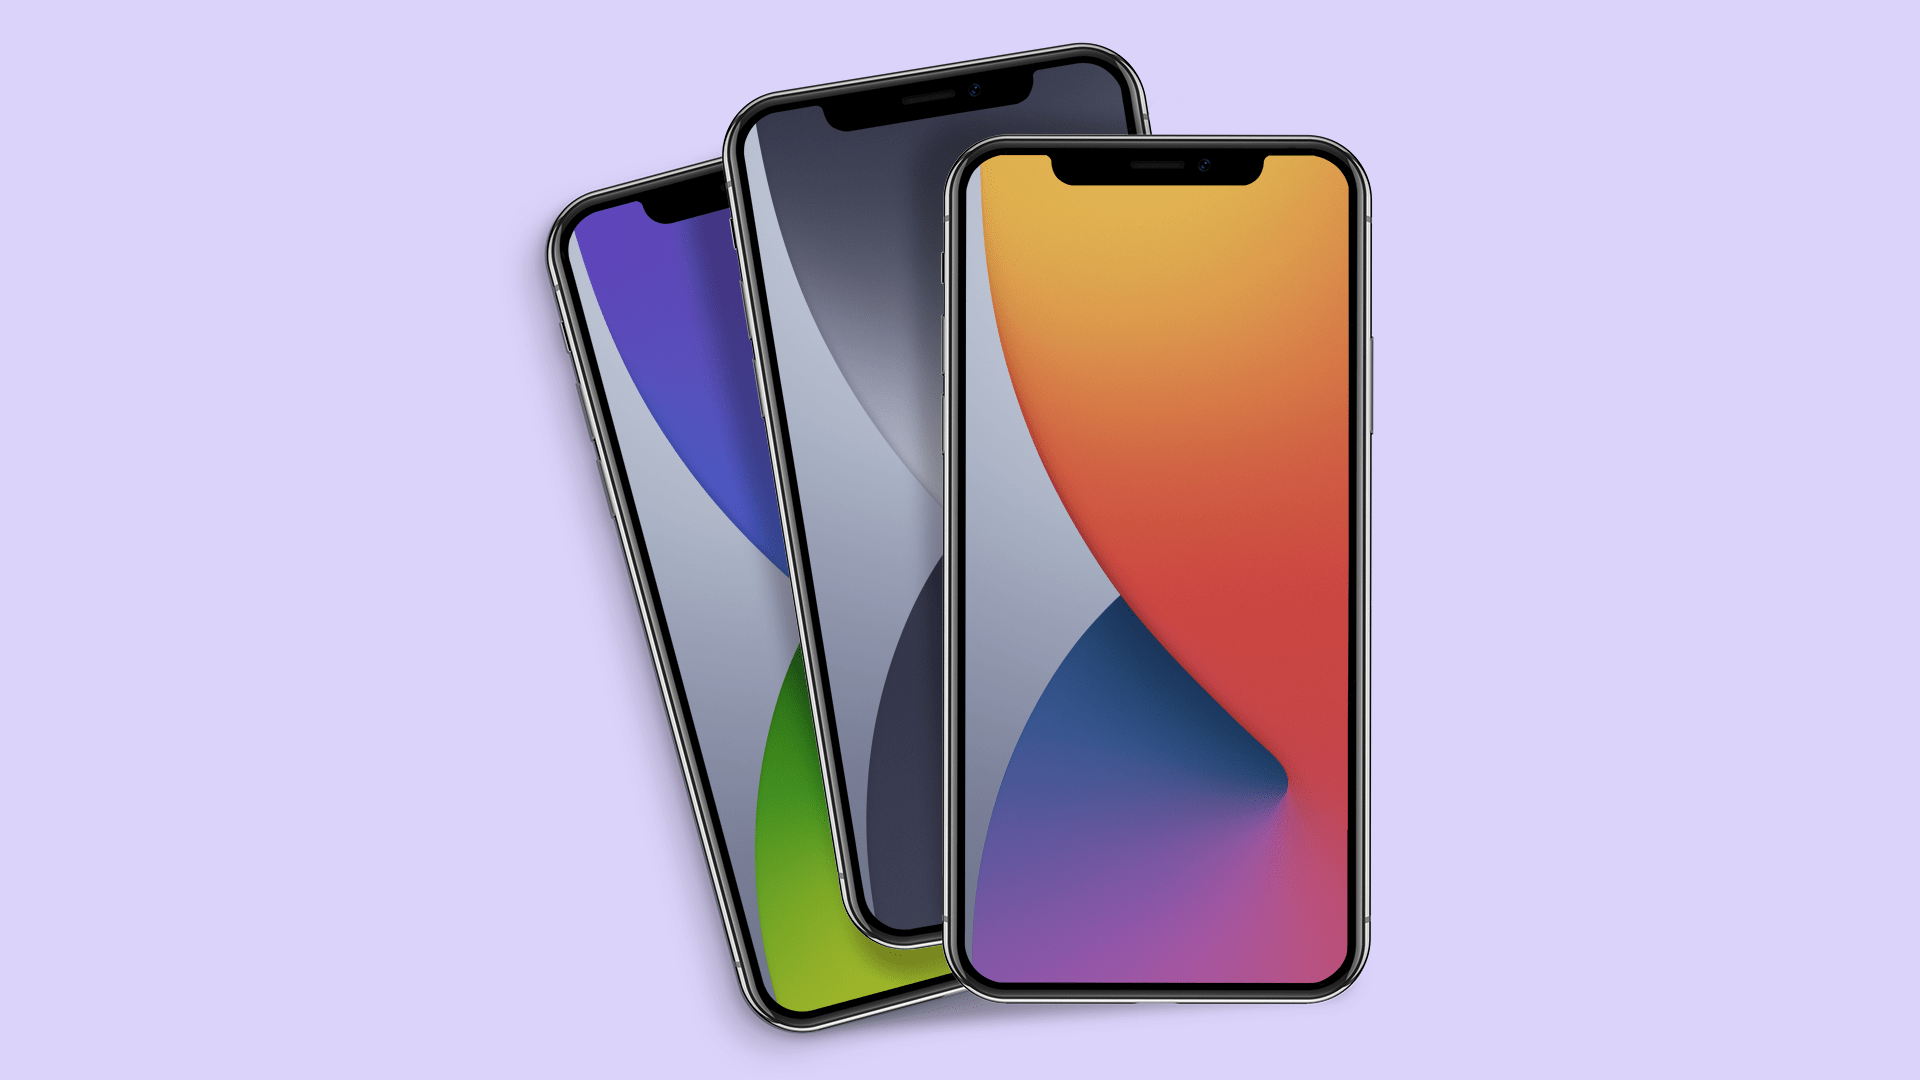 Download The New Ios 14 Wallpapers Here